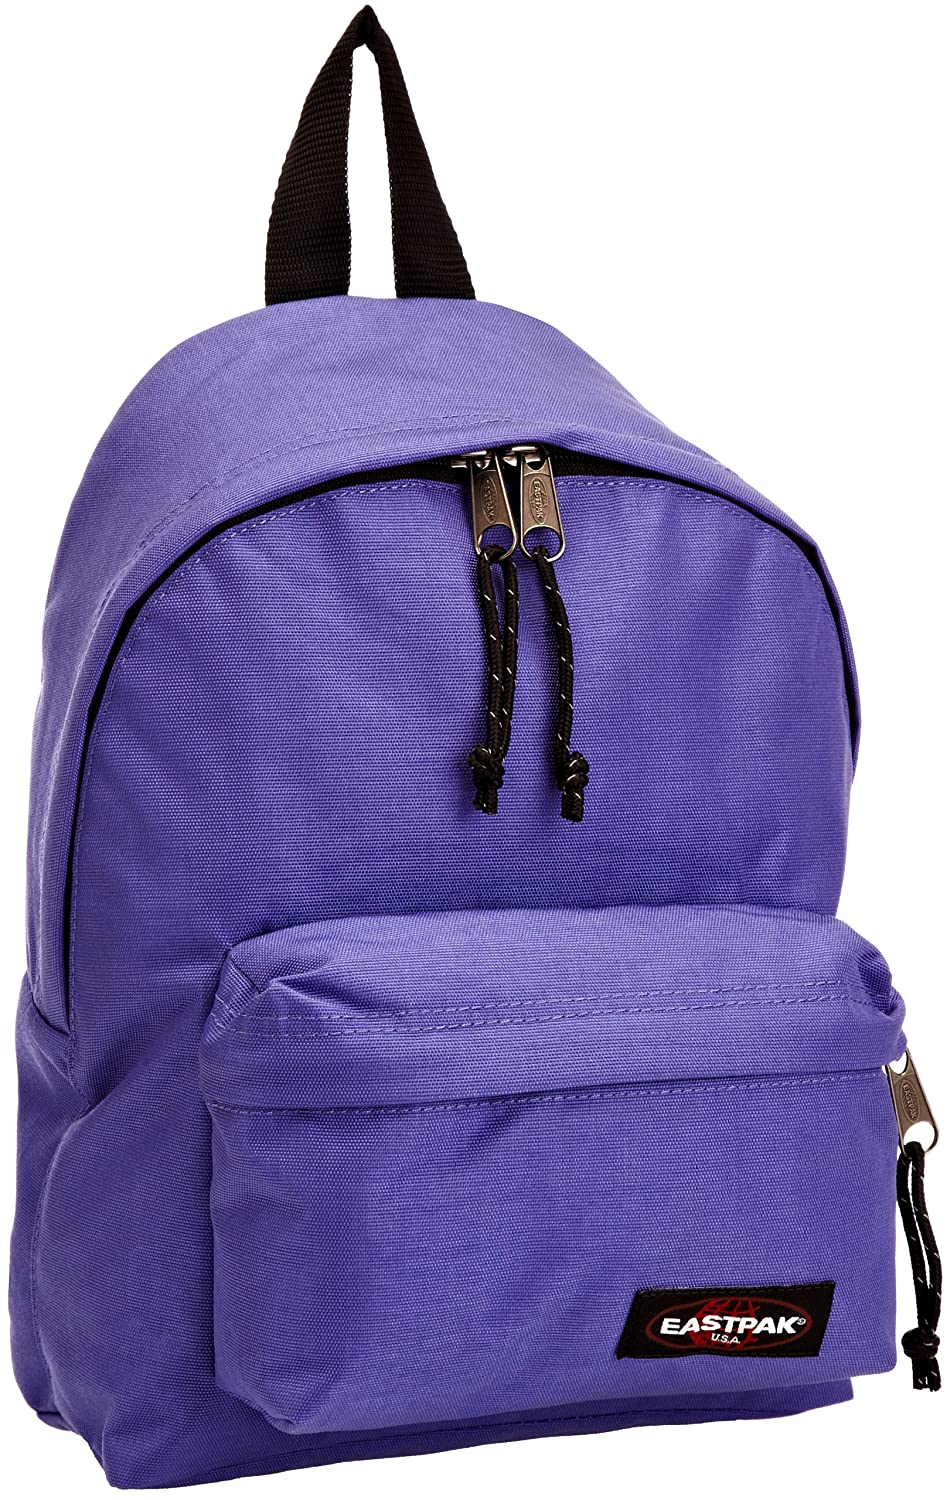 Eastpak Orbit - Mochila, unisex, color beasty beatle, talla Única: Amazon.es: Equipaje